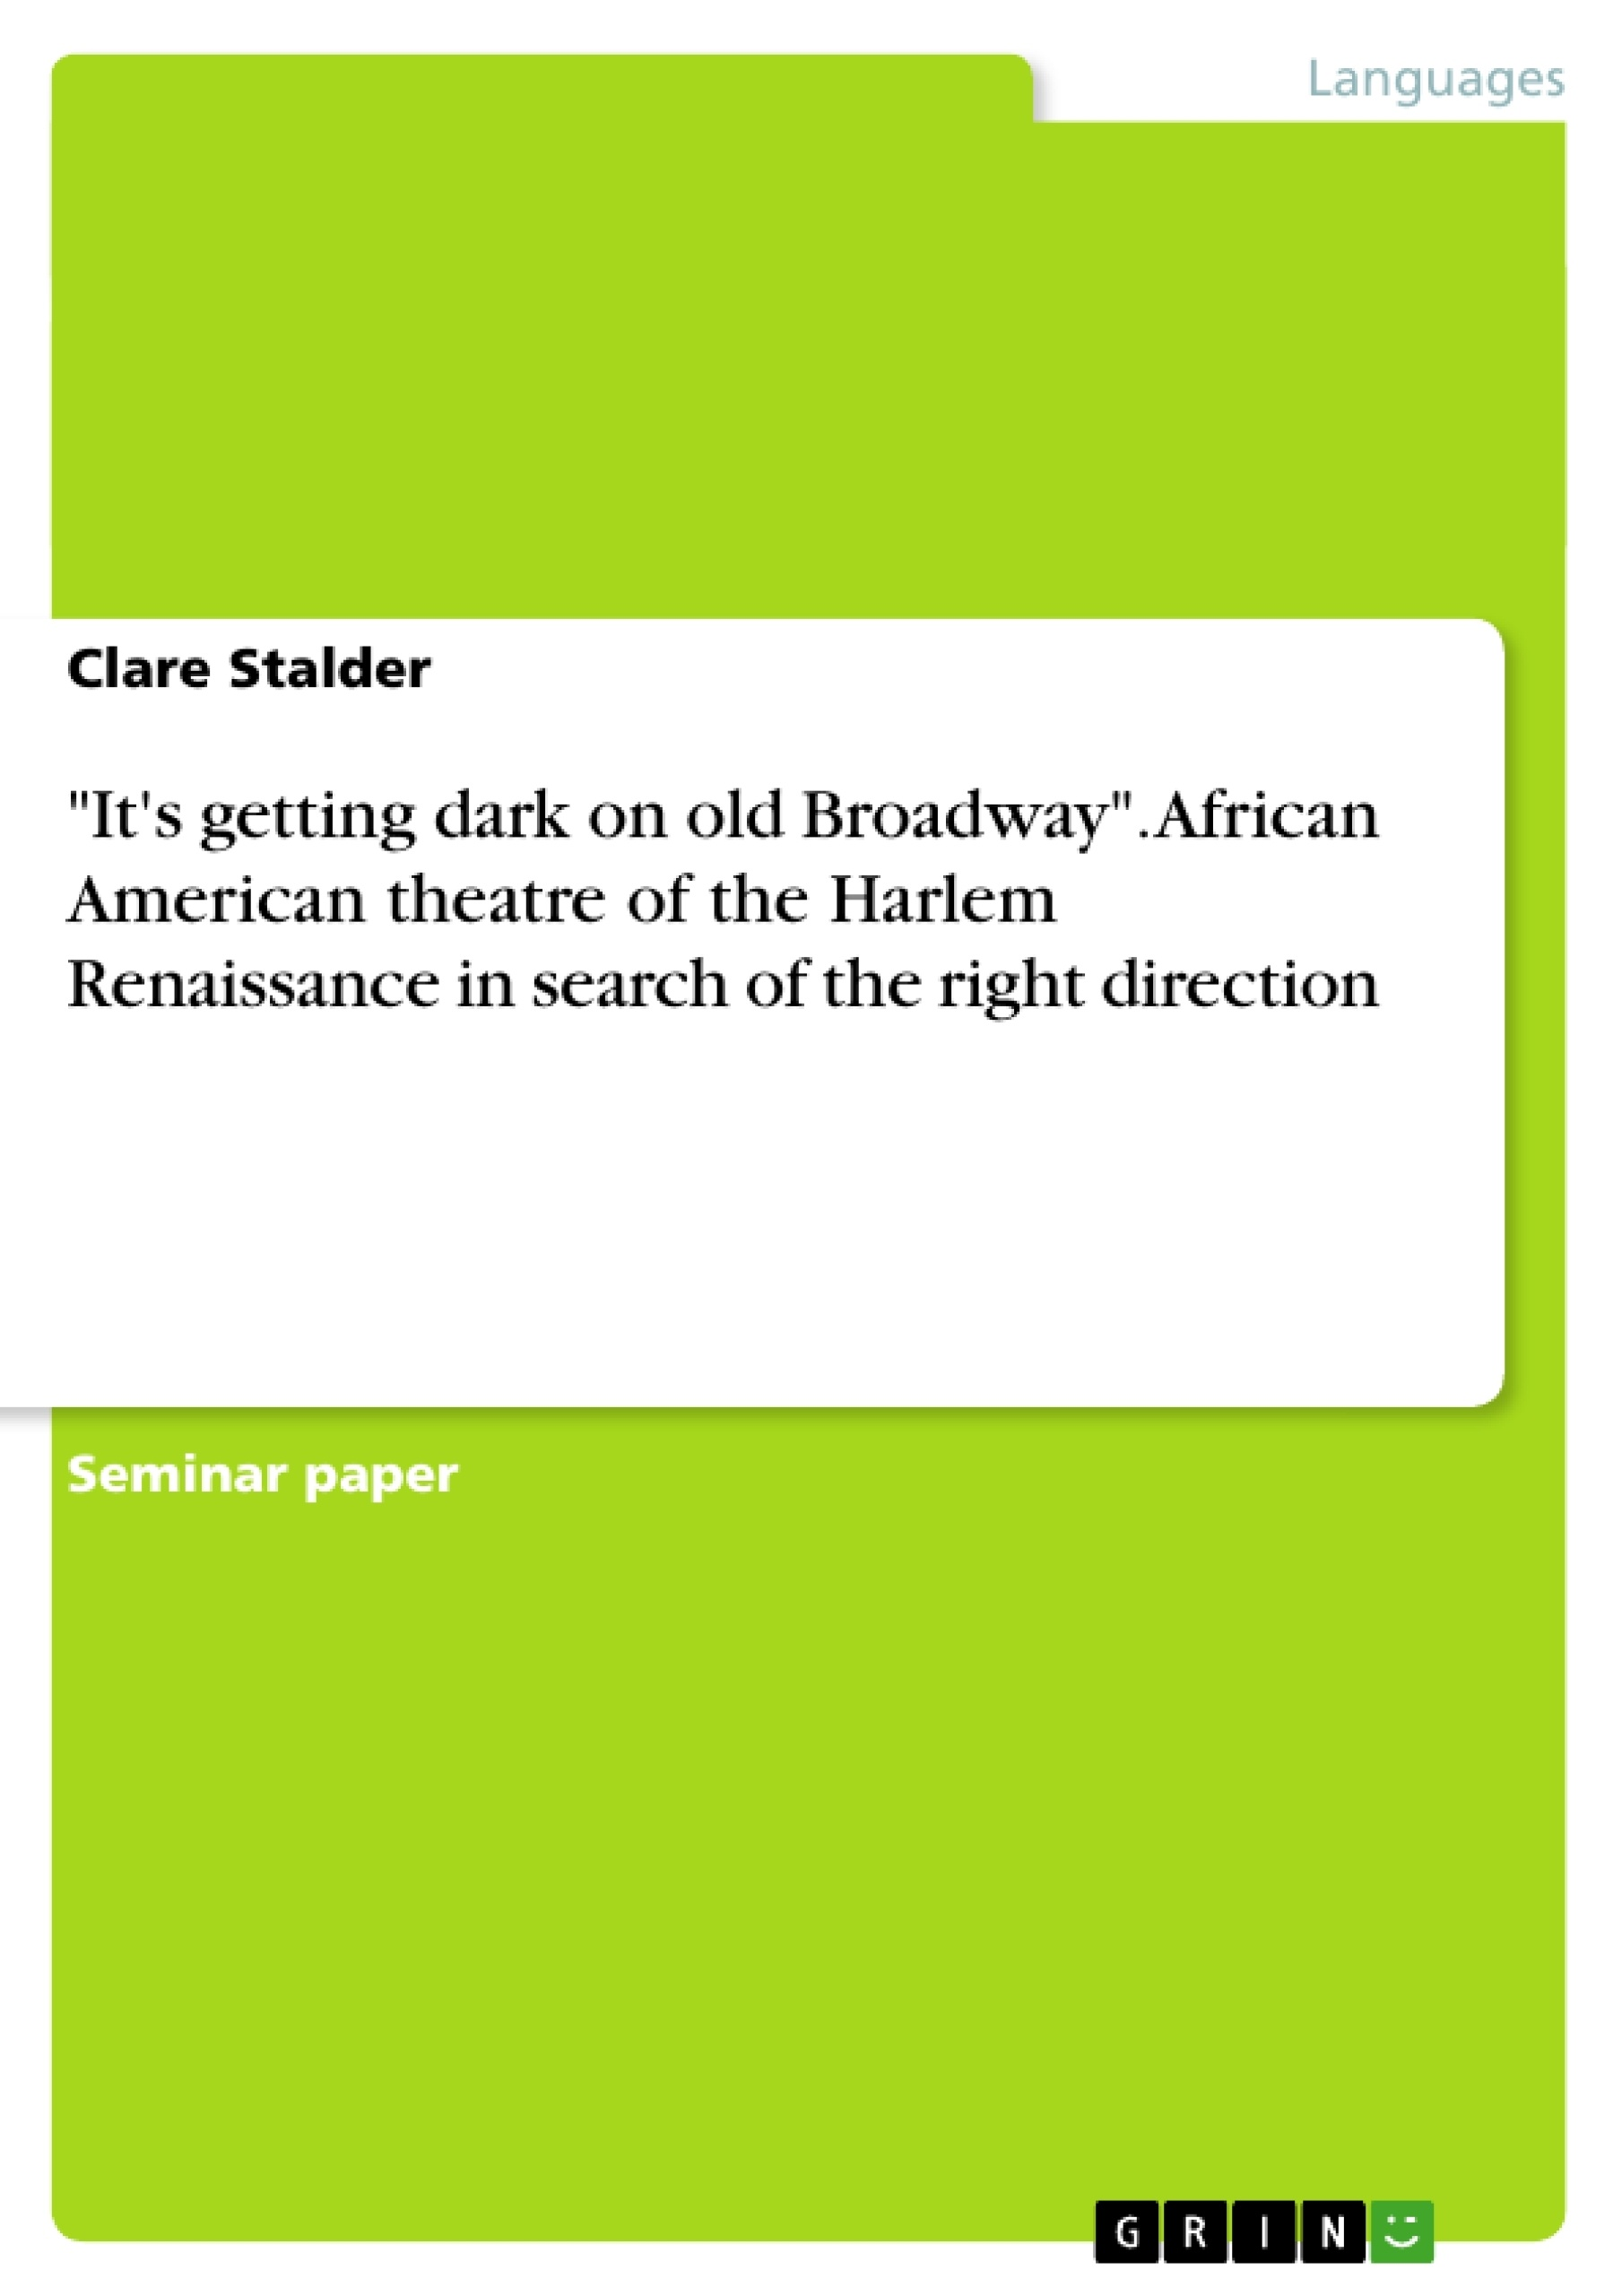 """Title: """"It's getting dark on old Broadway"""". African American theatre of the Harlem Renaissance in search of the right direction"""